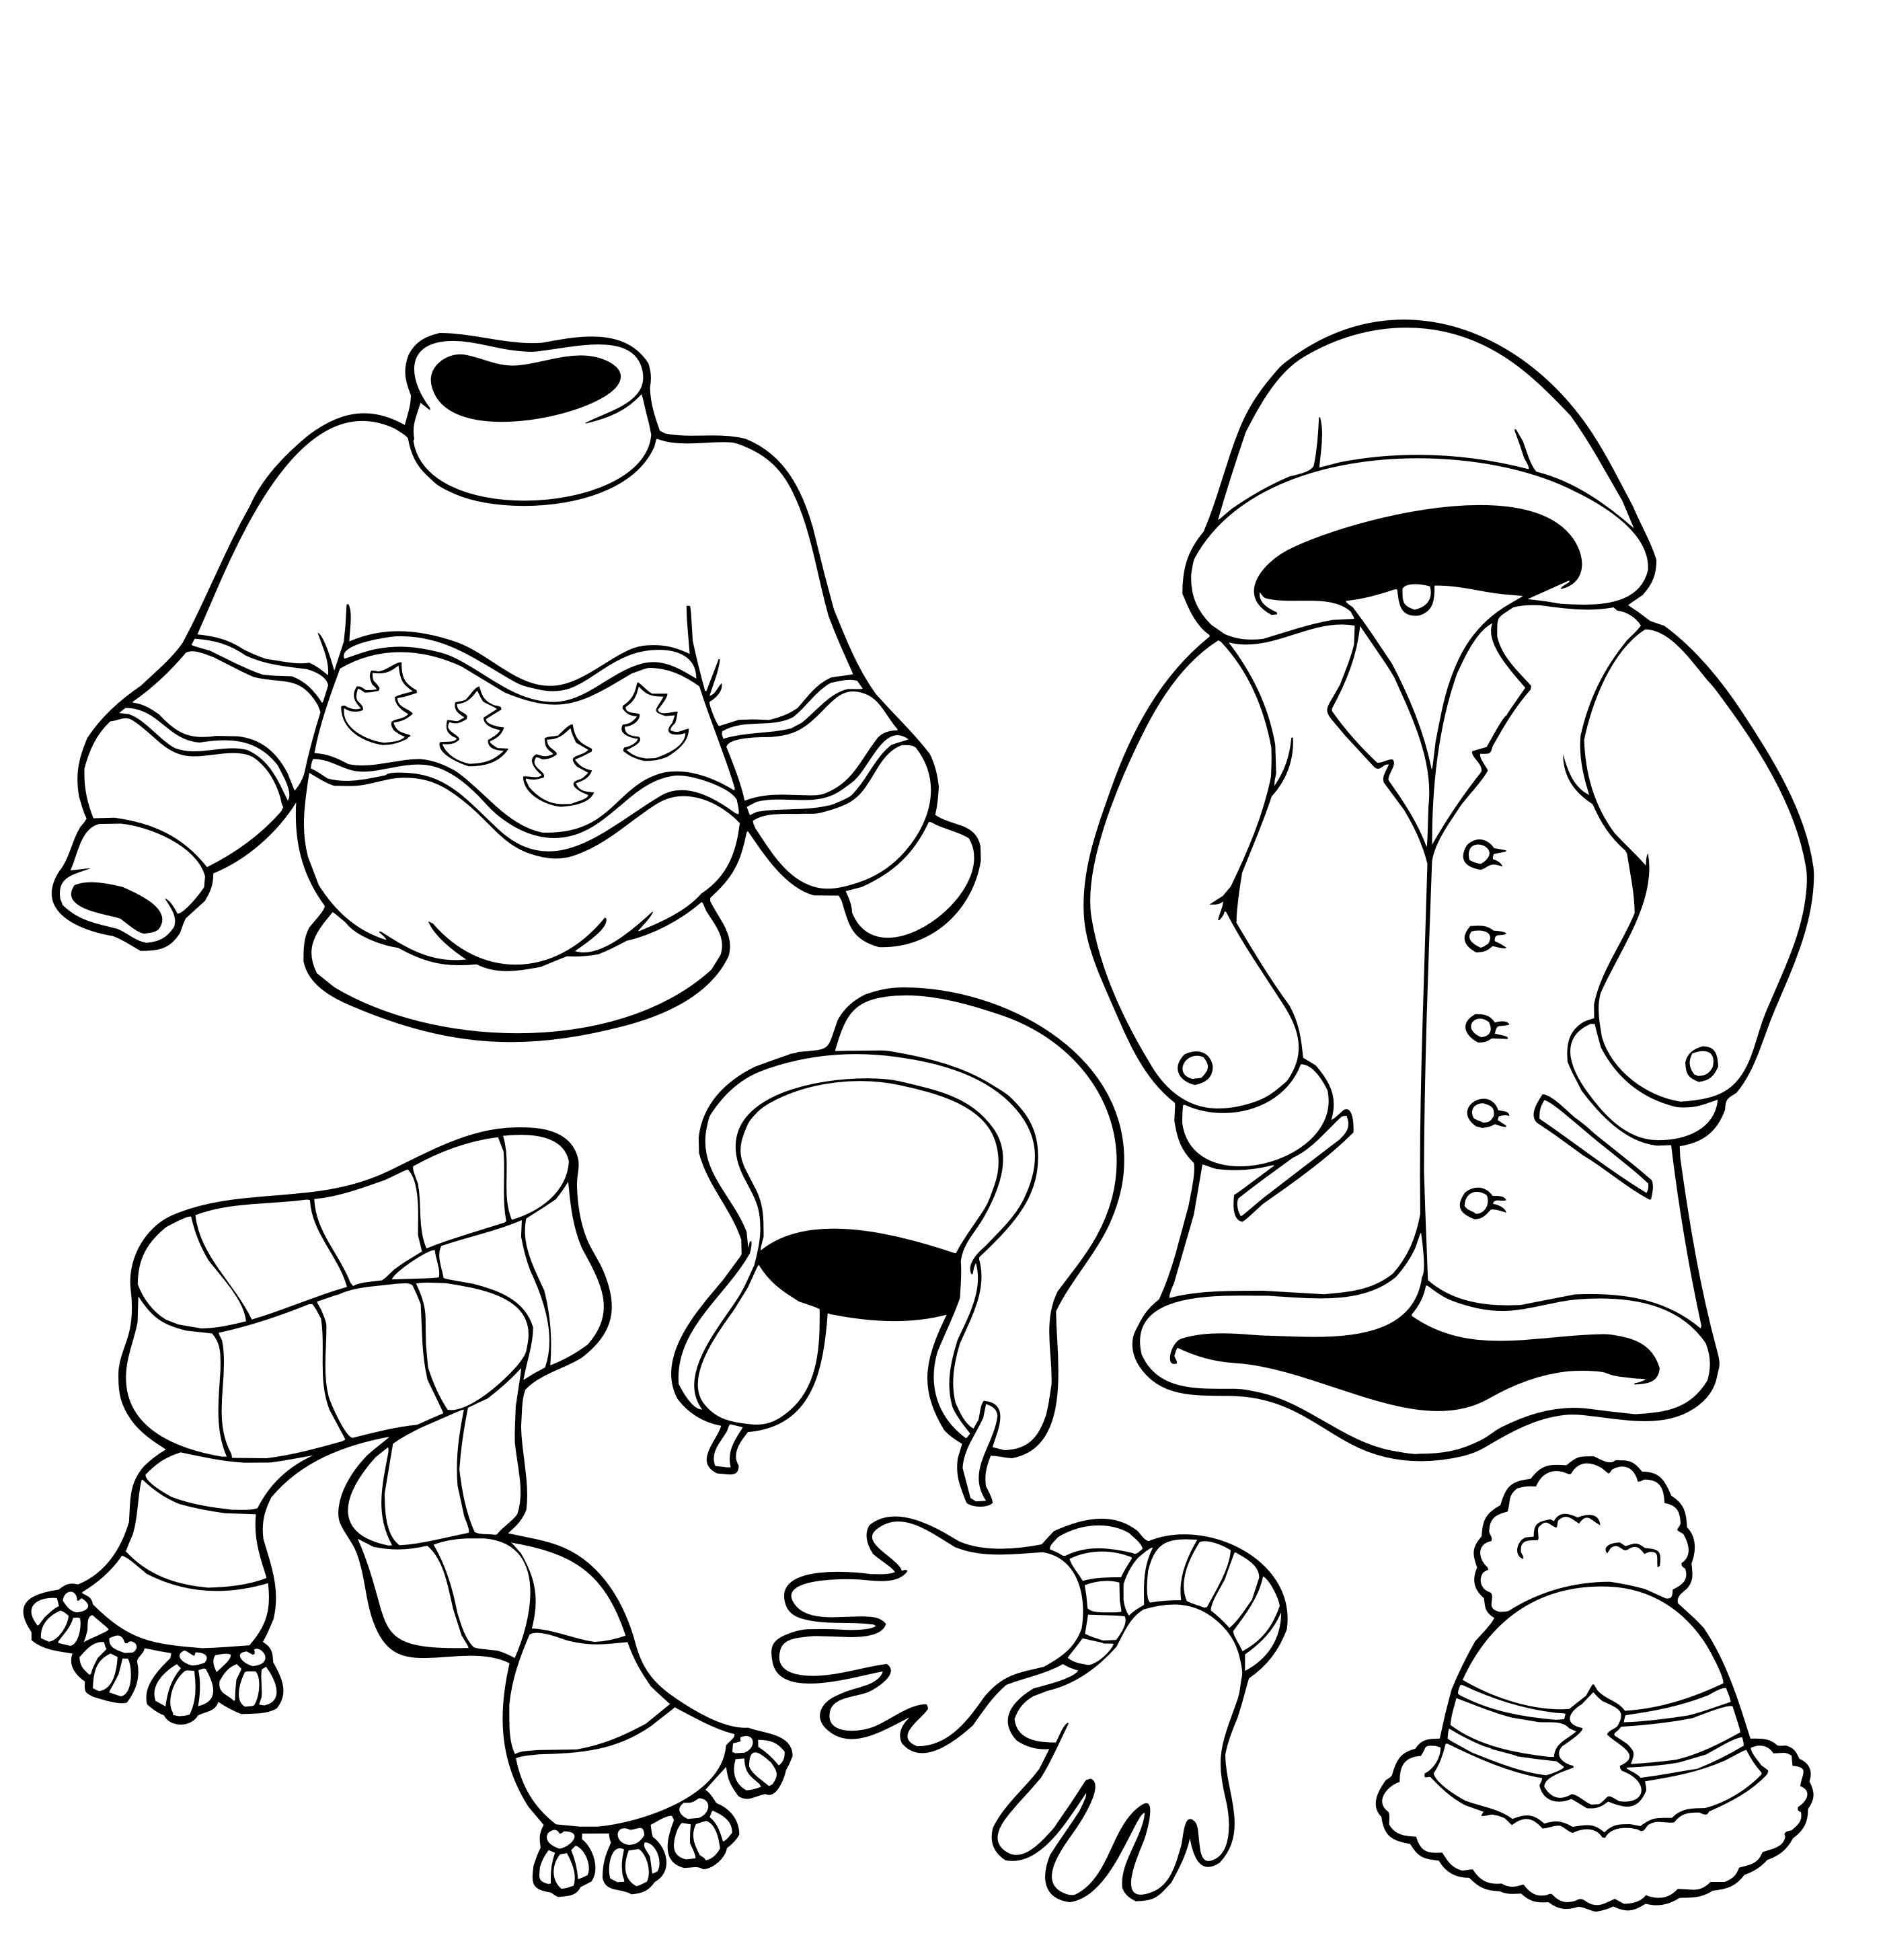 coloring pages of winter clothes winter clothes coloring pages to download and print for free pages clothes winter of coloring